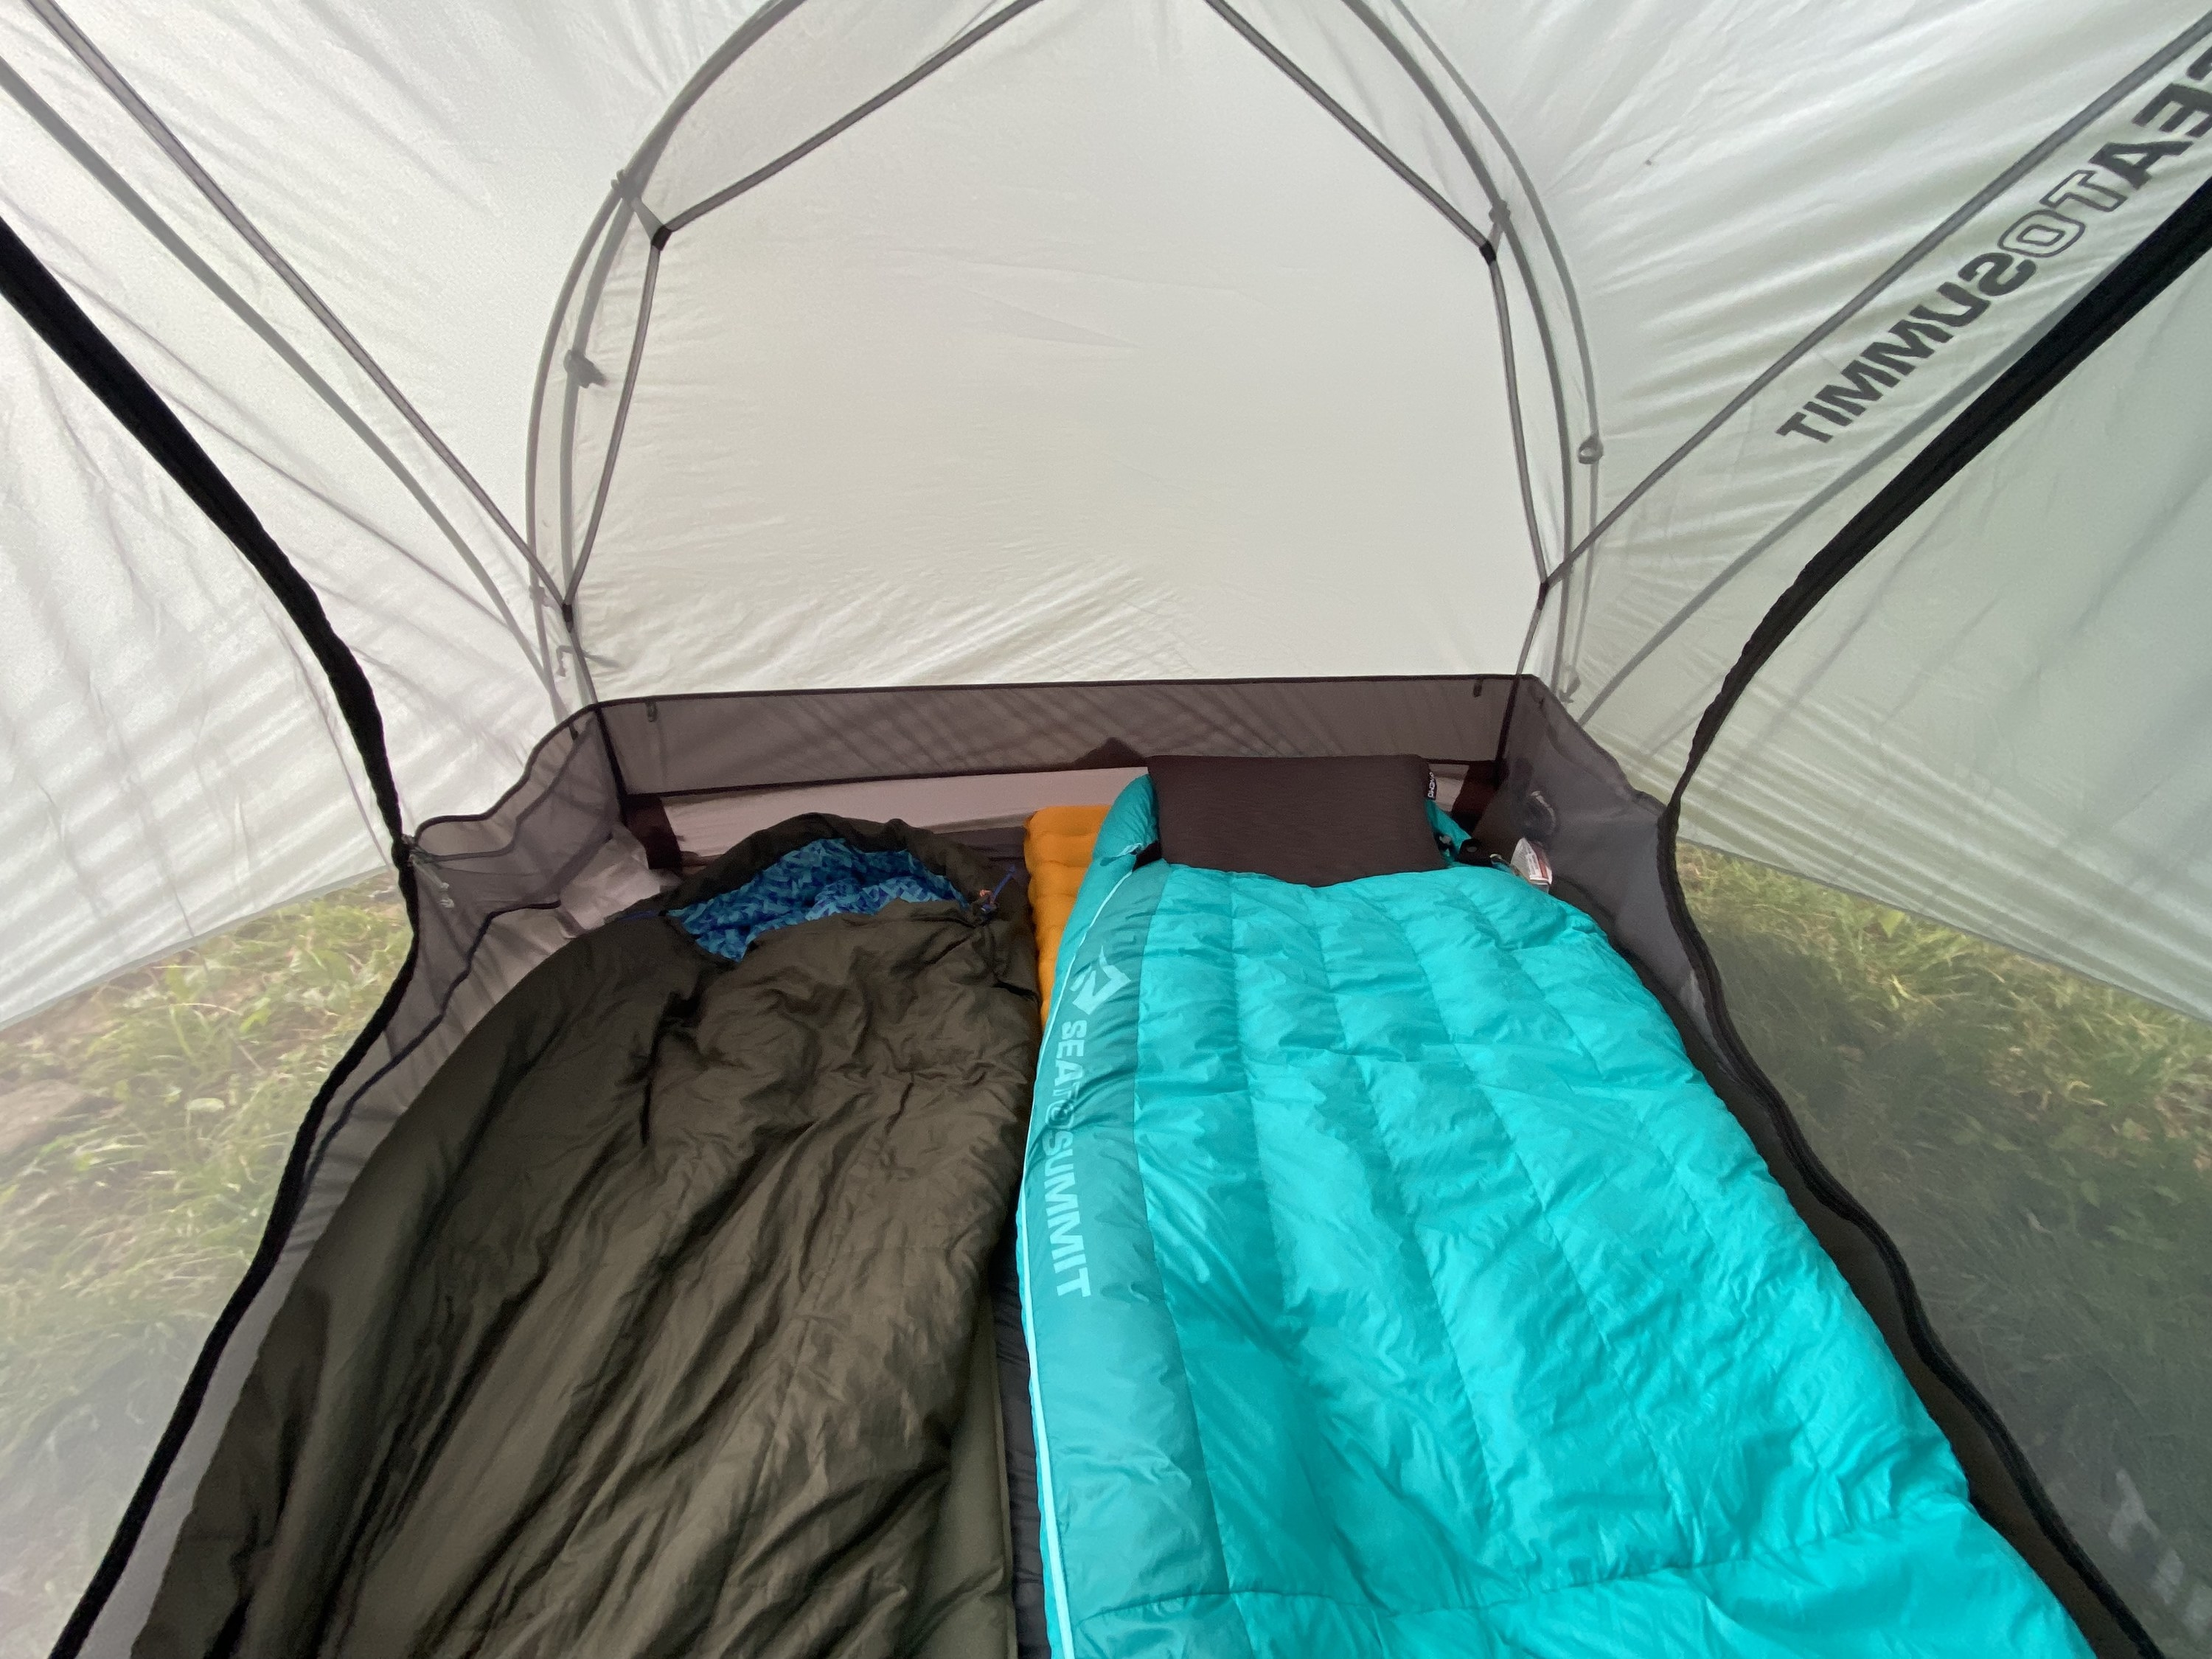 the inside of the tent with two sleeping bags